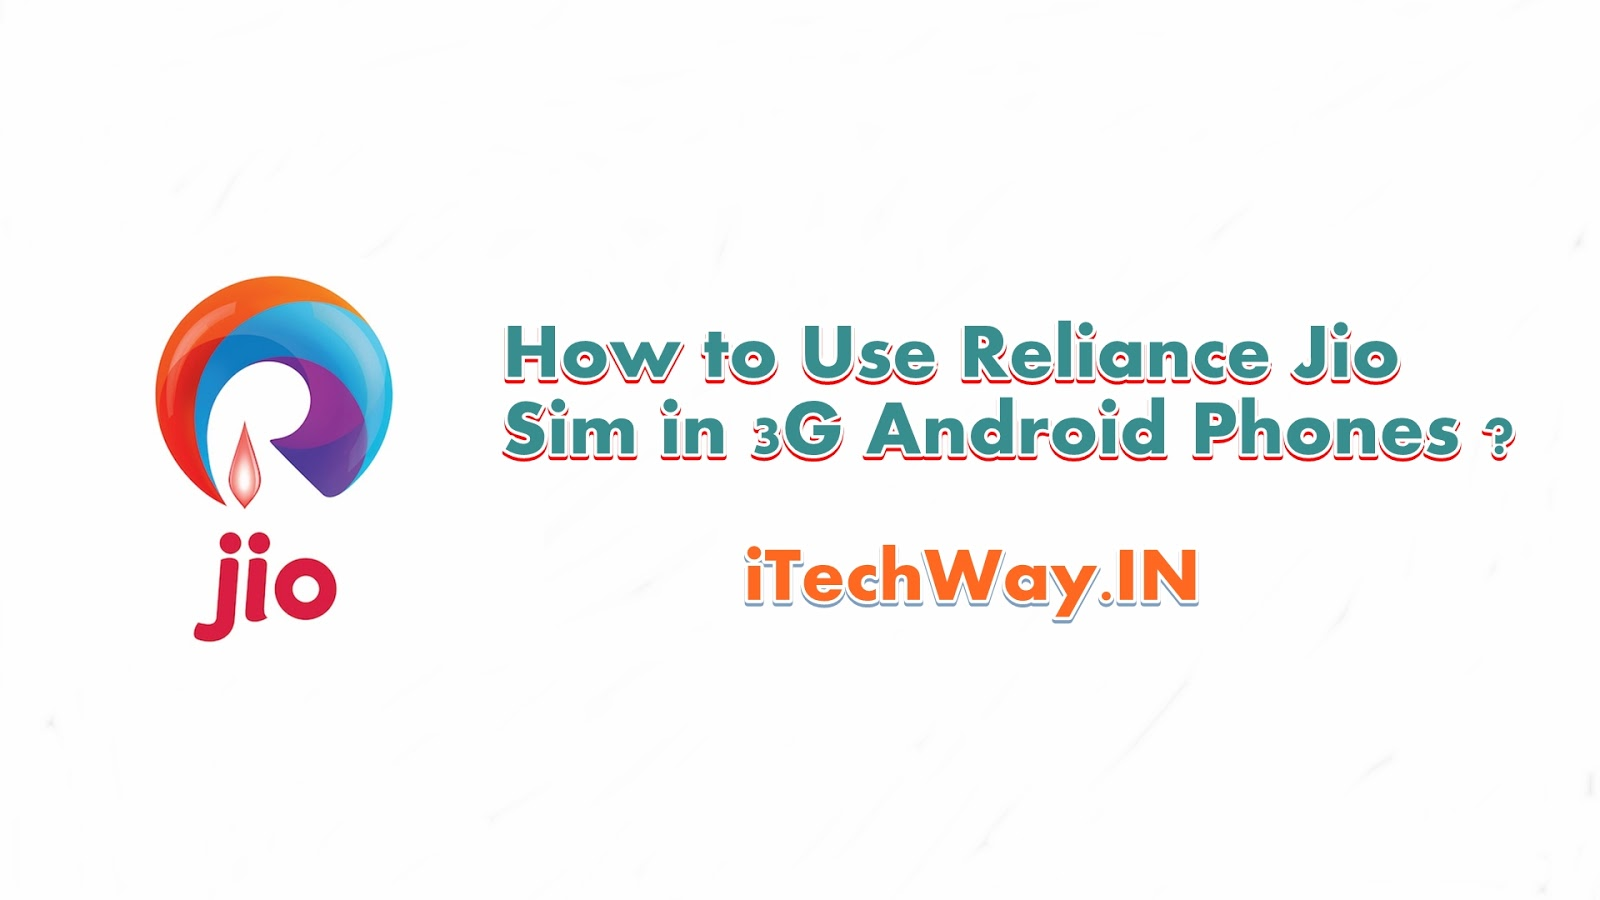 Use Reliance Jio Sim in 3g Android Phone